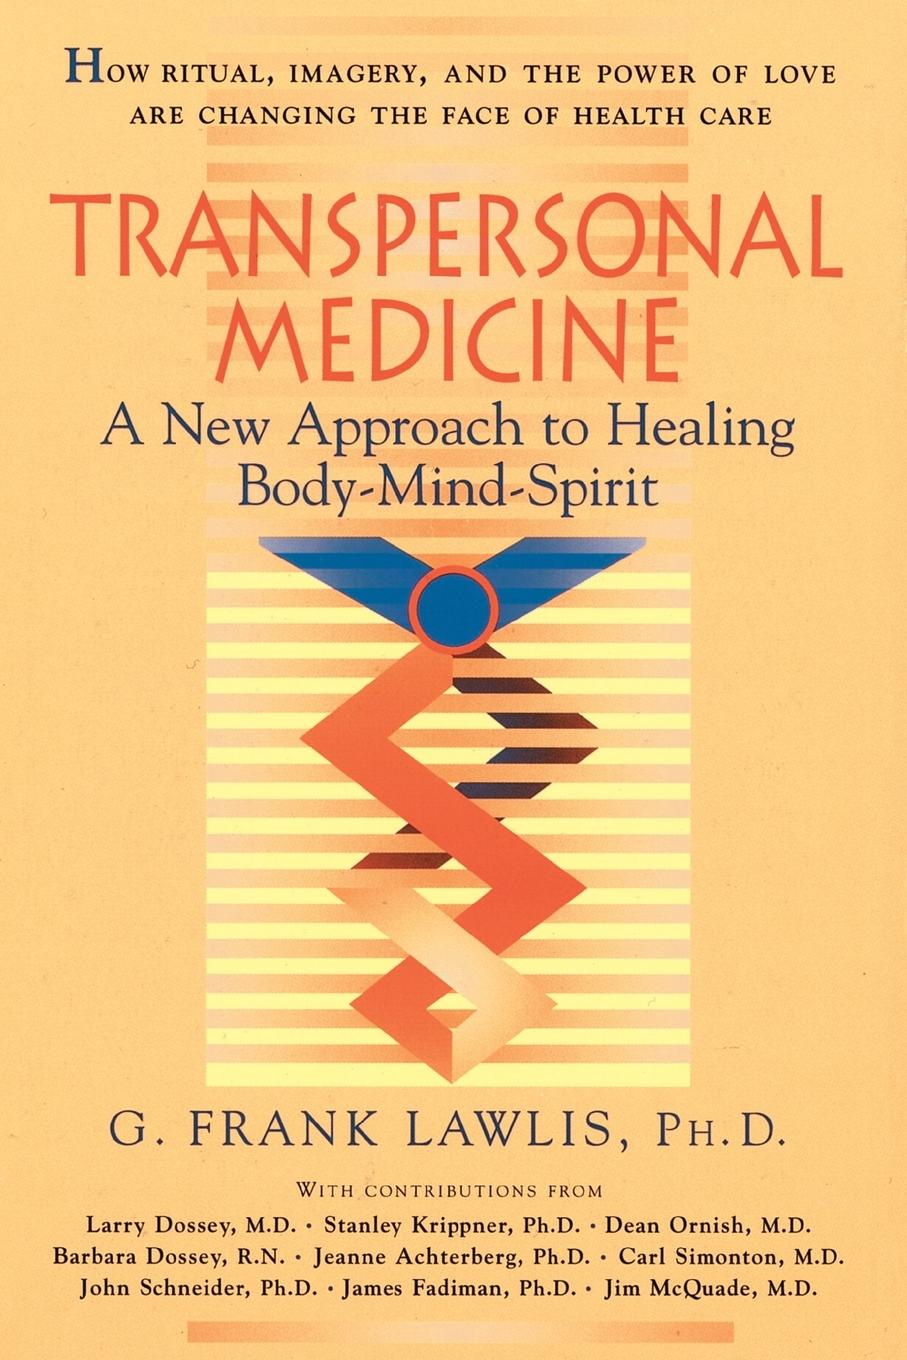 G. Frank Lawlis Transpersonal Medicine. The New Approach to Healing Body-Mind-Spirit aleksandr strannik the most amazing things from the transpersonal psychologist's practice